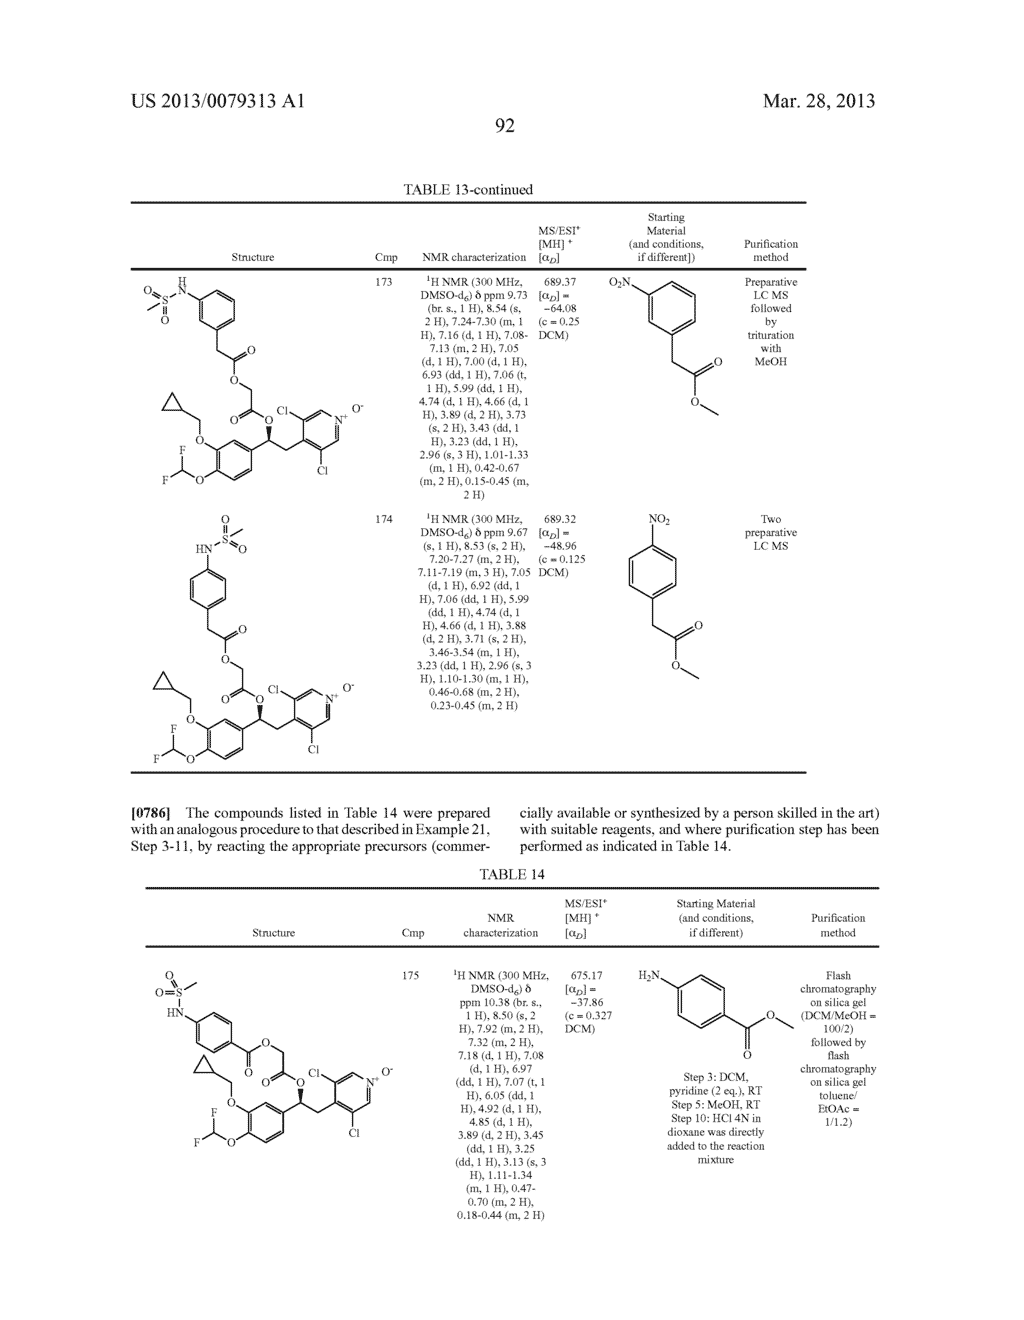 DERIVATIVES OF 1-PHENYL-2-PYRIDINYL ALKYL ALCOHOLS AS PHOSPHODIESTERASE     INHIBITORS - diagram, schematic, and image 93